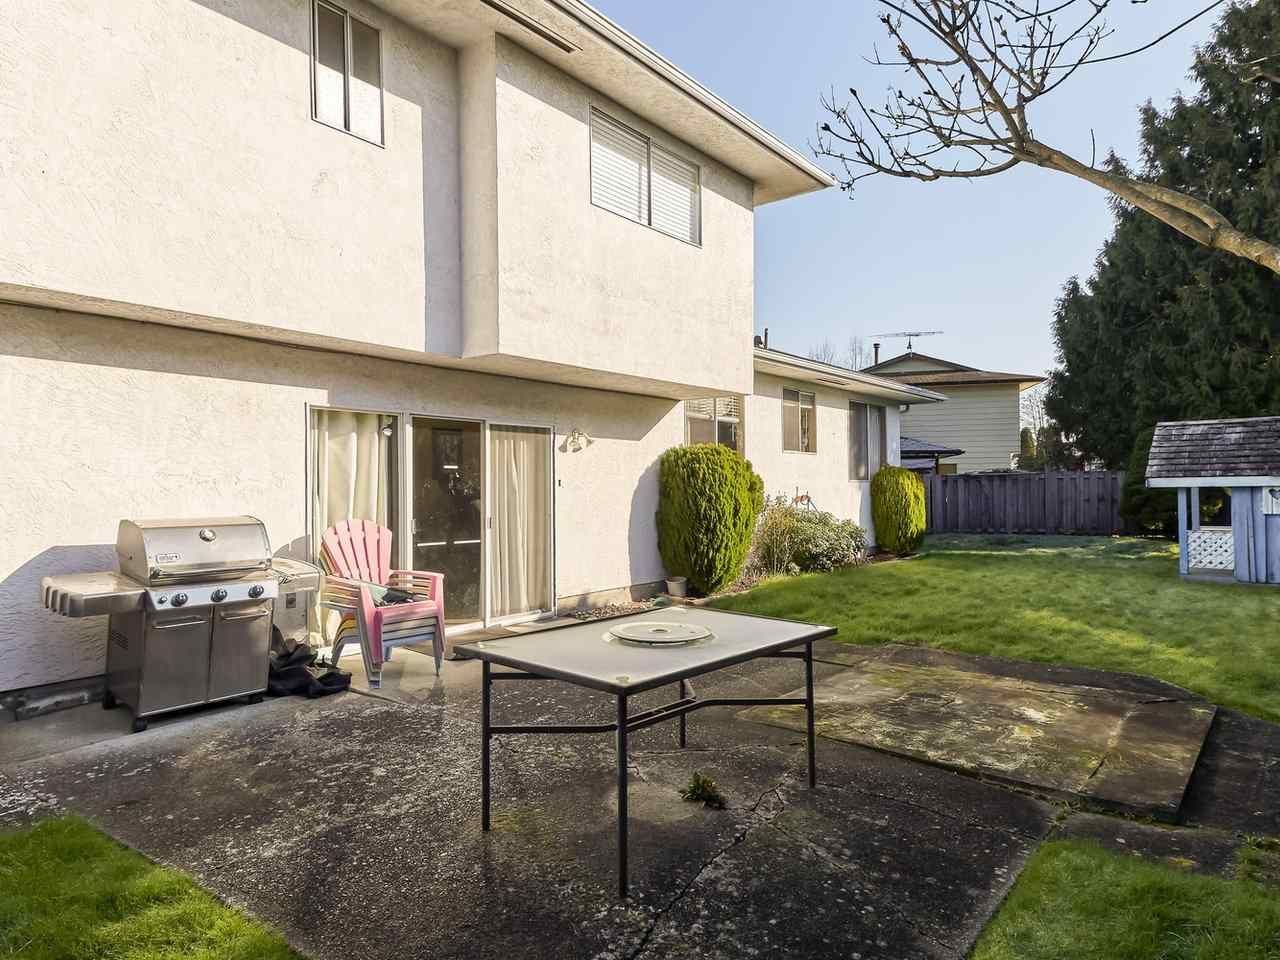 Photo 4: Photos: 4880 FORTUNE AVENUE in Richmond: Steveston North House for sale : MLS®# R2435063